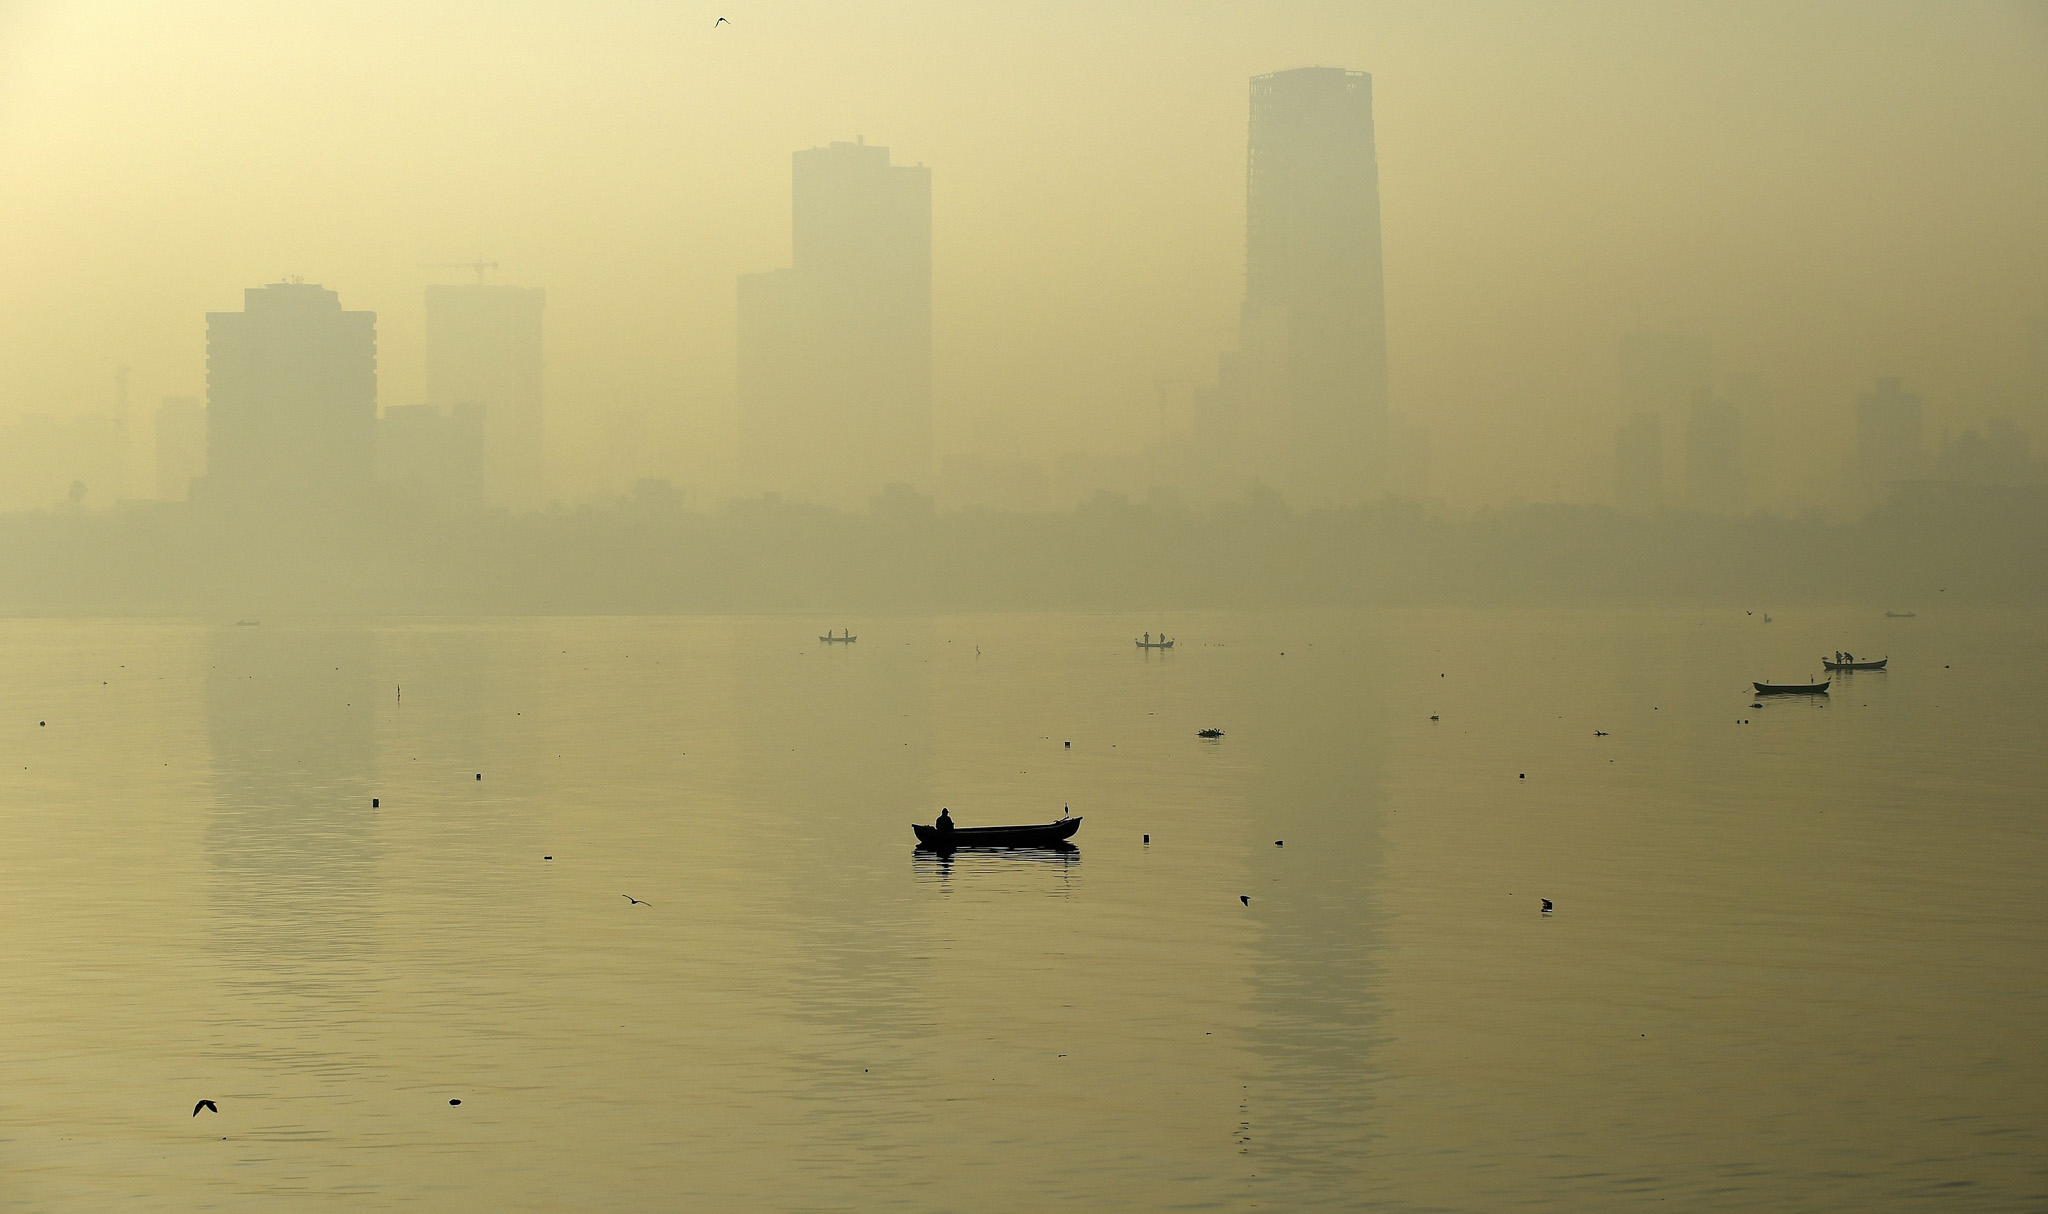 TOPSHOT - A fishing boat is seen in the ...TOPSHOT - A fishing boat is seen in the morning general view of the city skyline covered by a smoggy haze in Mumbai on January 29, 2016.  AFP PHOTO / PUNIT PARANJPE / AFP / PUNIT PARANJPEPUNIT PARANJPE/AFP/Getty Images